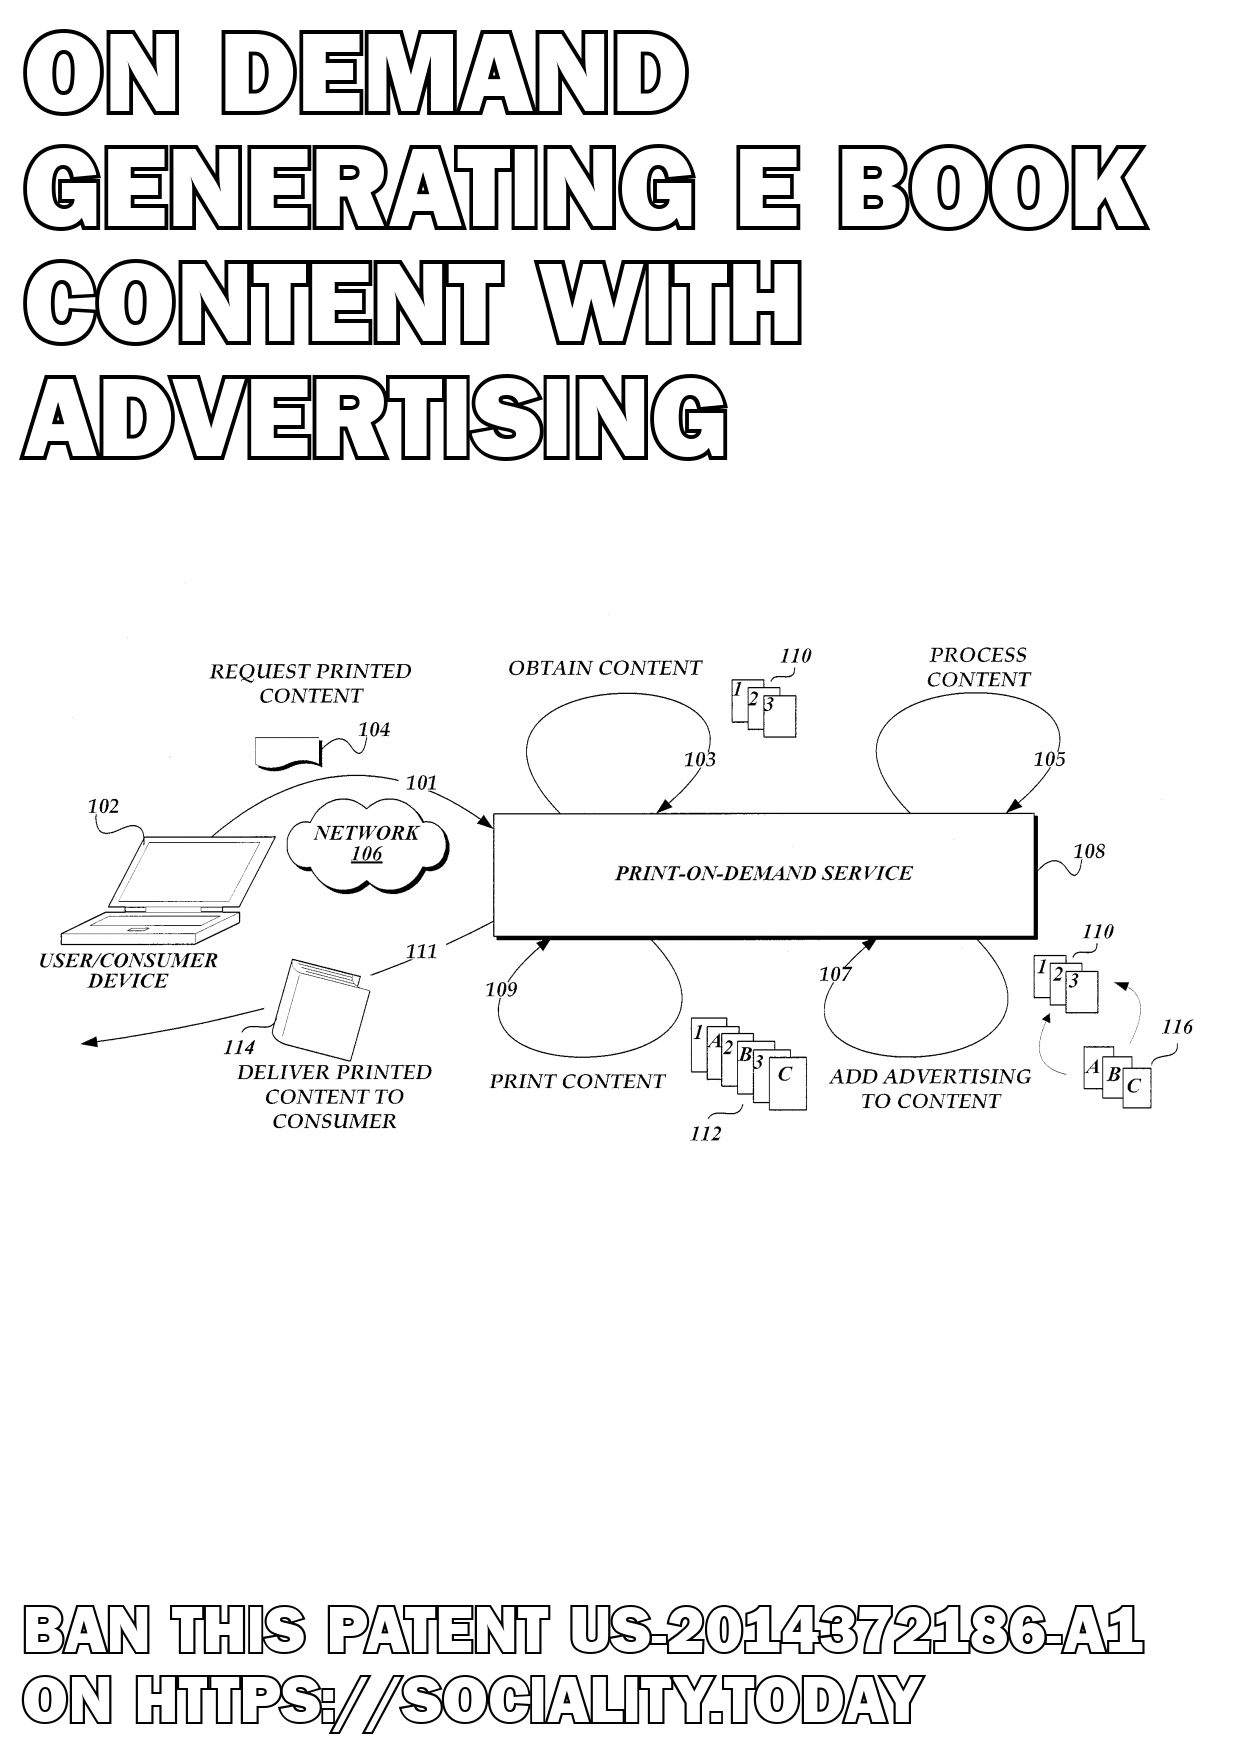 On-Demand Generating E-Book Content with Advertising  - US-2014372186-A1